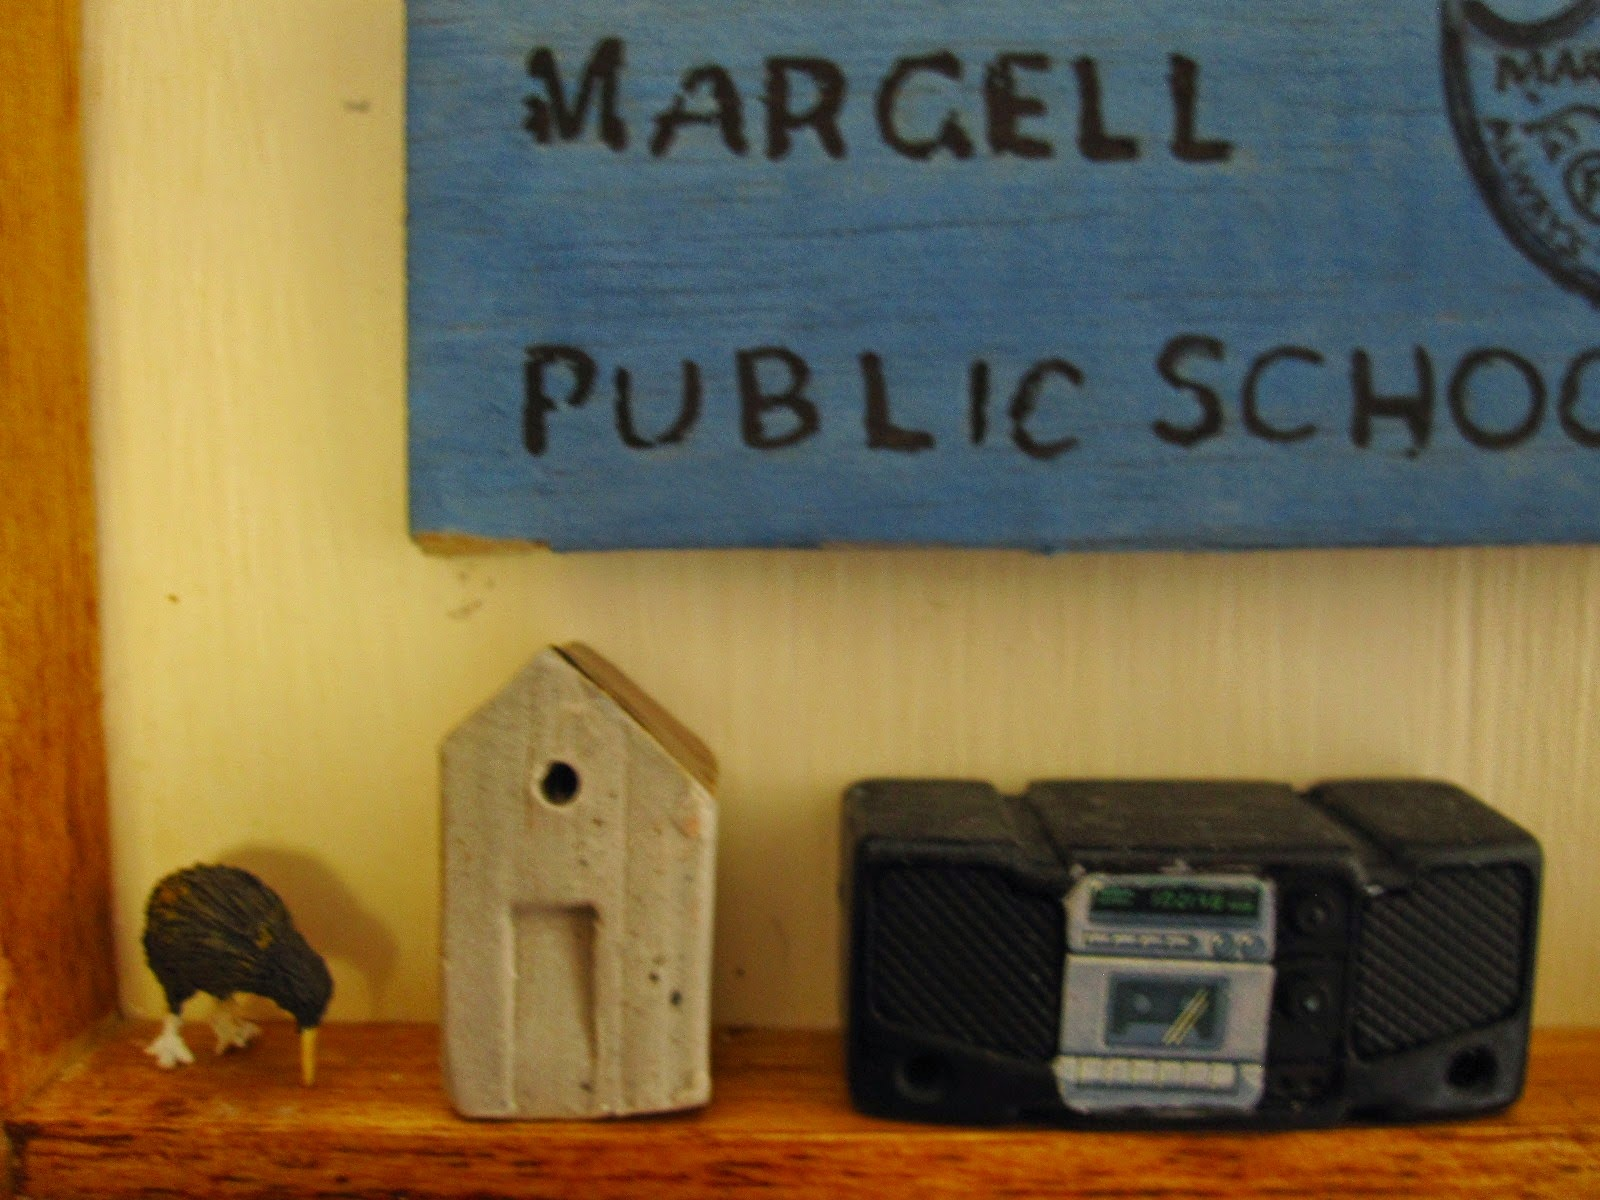 A small clay house displayed in a dolls' house between a kiwi figure and a portable tape deck and CD player.